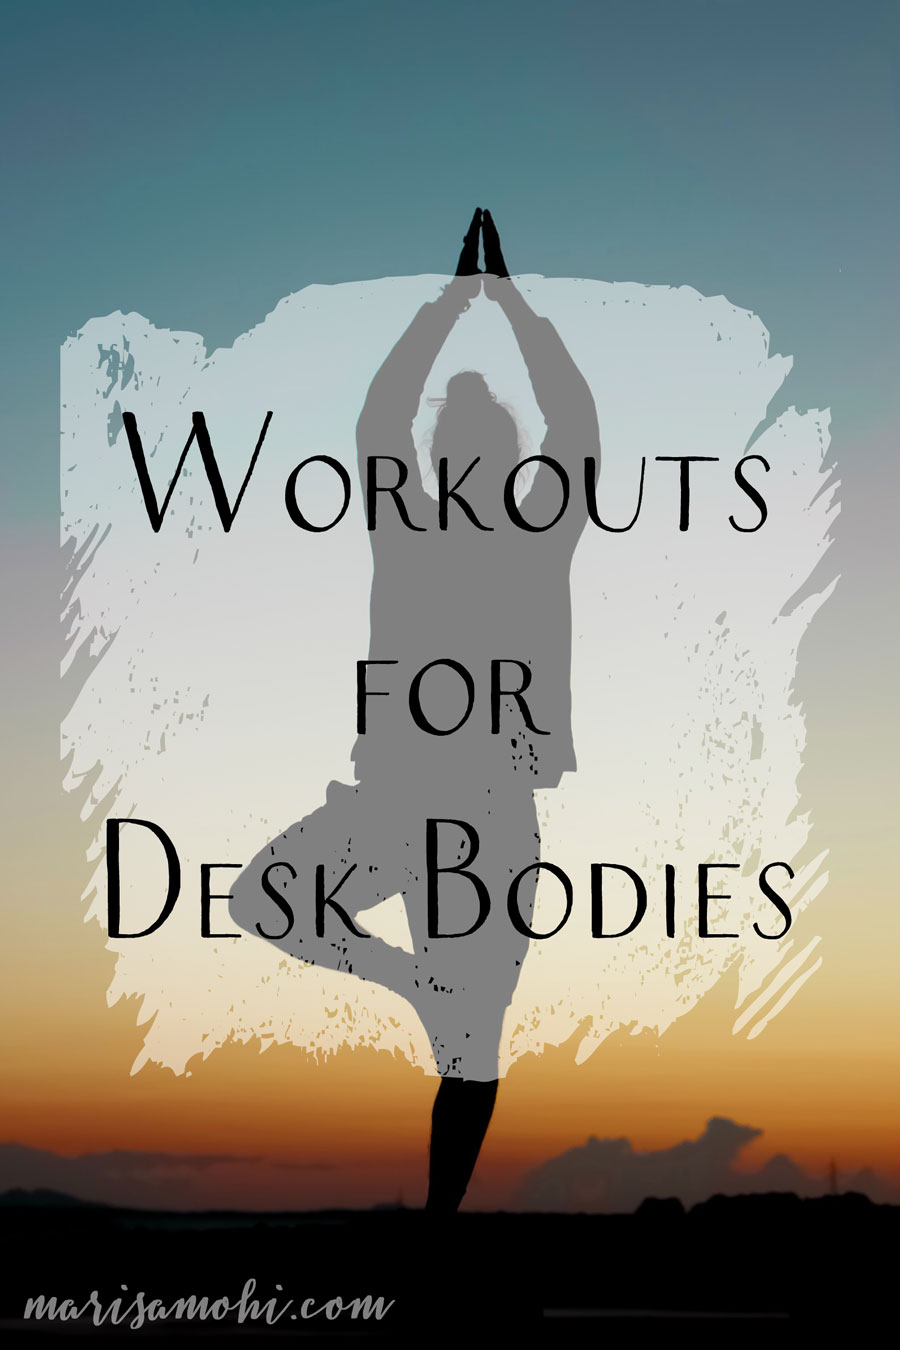 Workouts for Desk Bodies